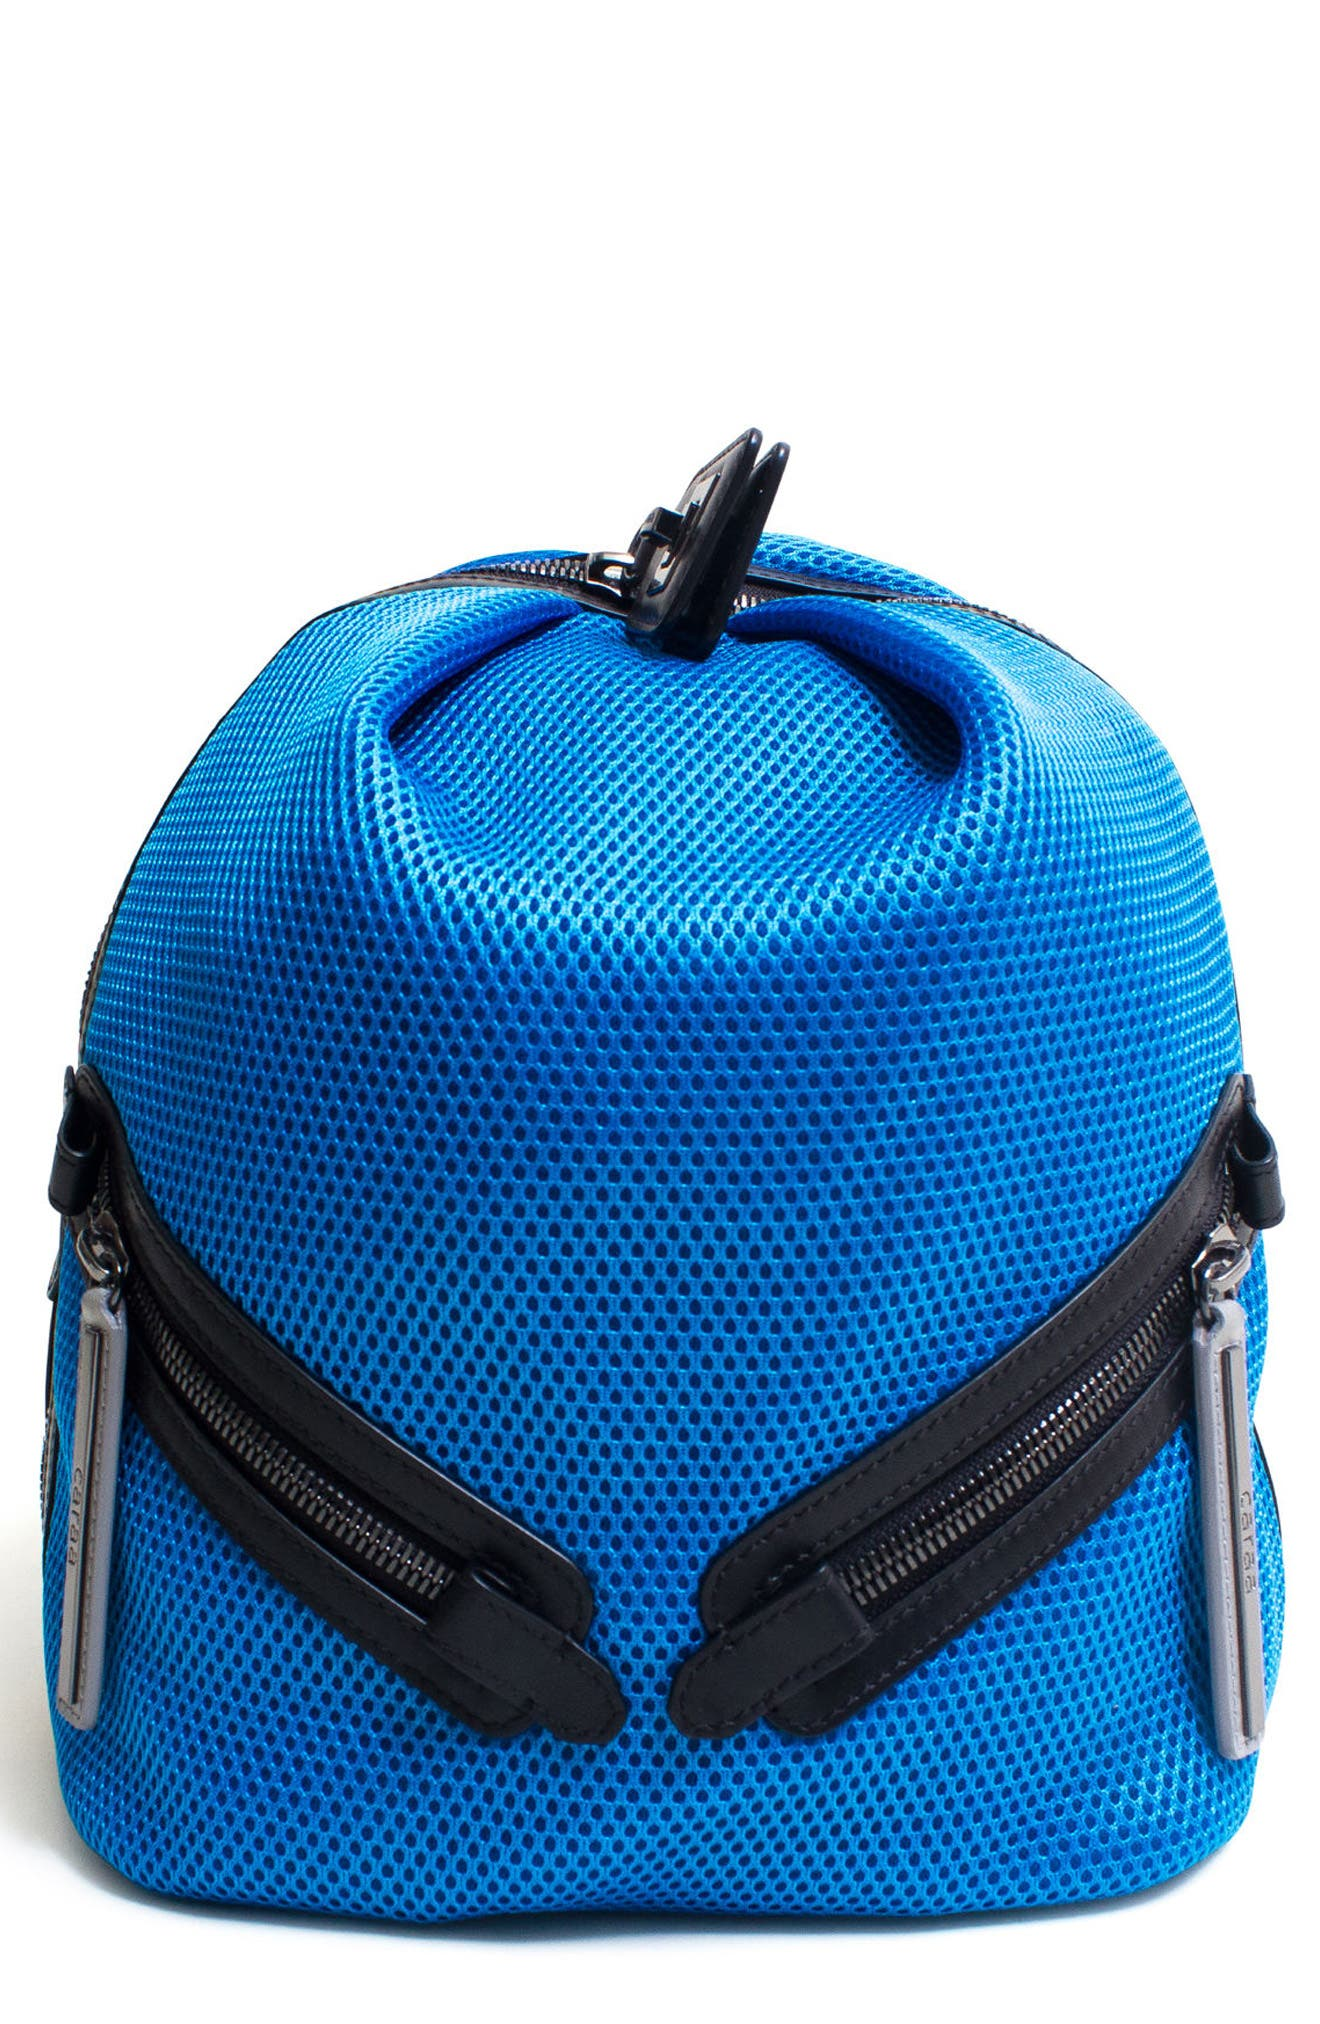 Alternate Image 1 Selected - Caraa Dance 2 Mesh with Leather Trim Backpack